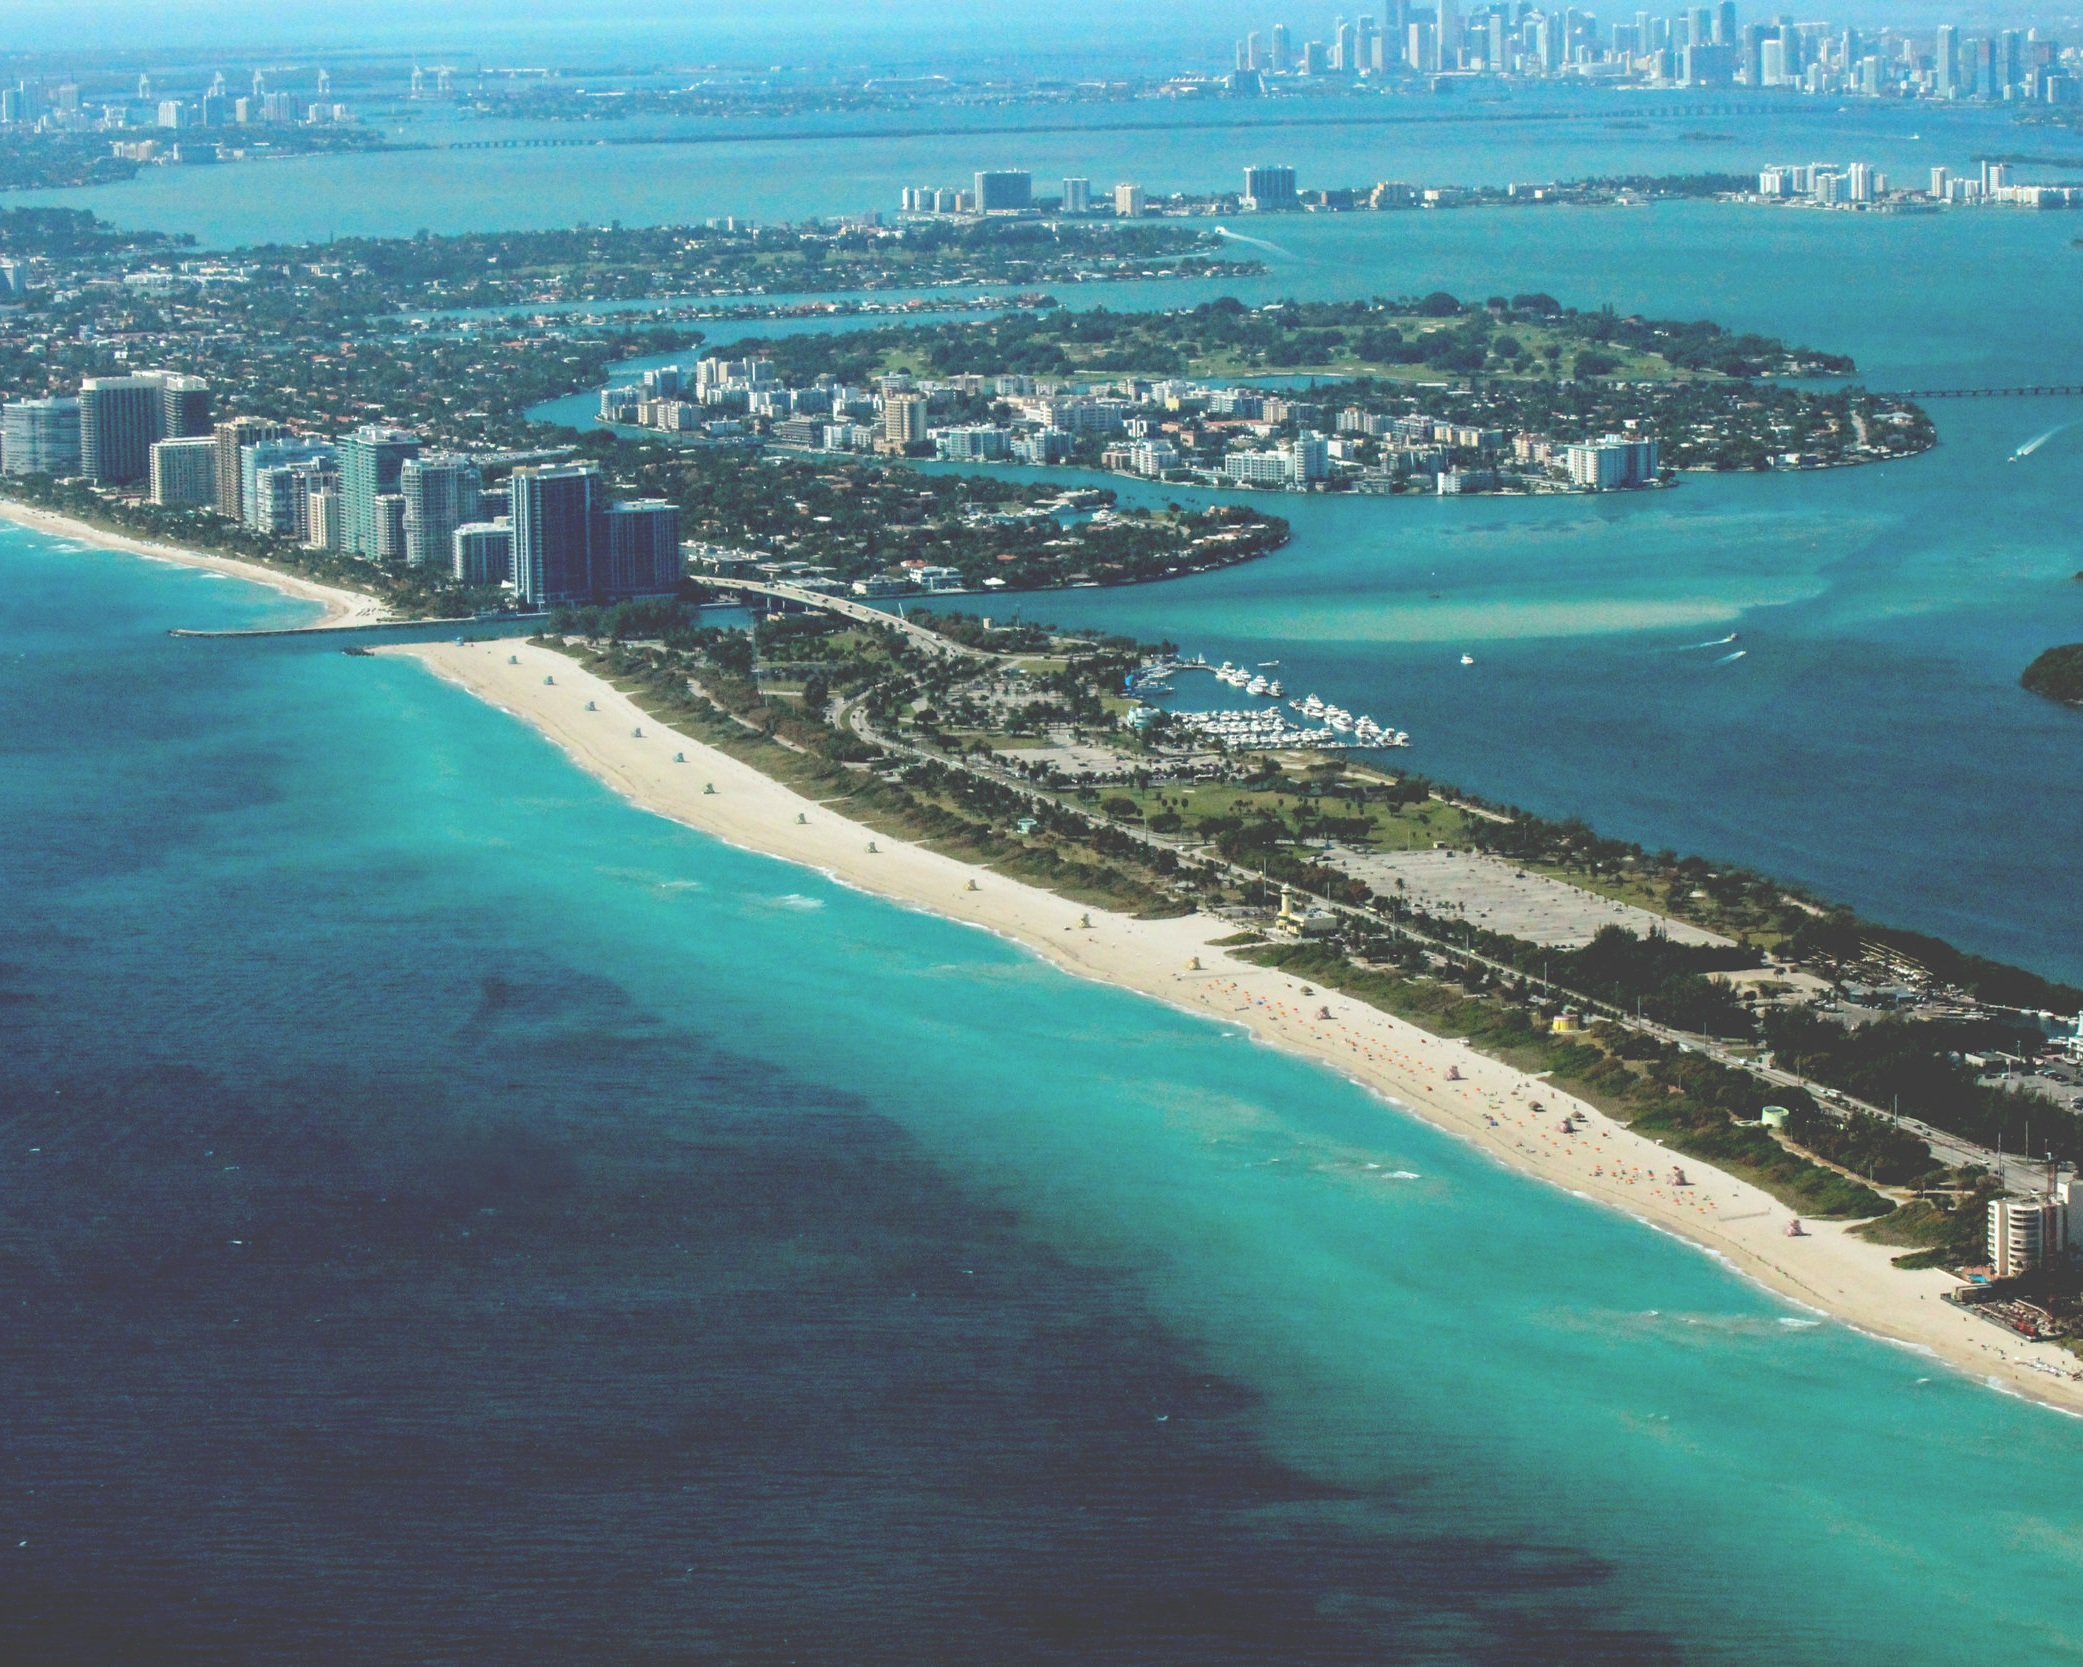 DESTINATION MIAMI - Discover the area of extravagance and stars. Miami stands for a lot of glamour, fancy art and stars, hip lifestyle, sun and the sea. In 2008 Miami was even selected as the most attractive city in the world. Looking for a bit of variety, with your yacht you can reach berth taking destinations like the Florida Keys or the Bahamas in just a few hours.Discover now on our blog amazing yachting destinations>>